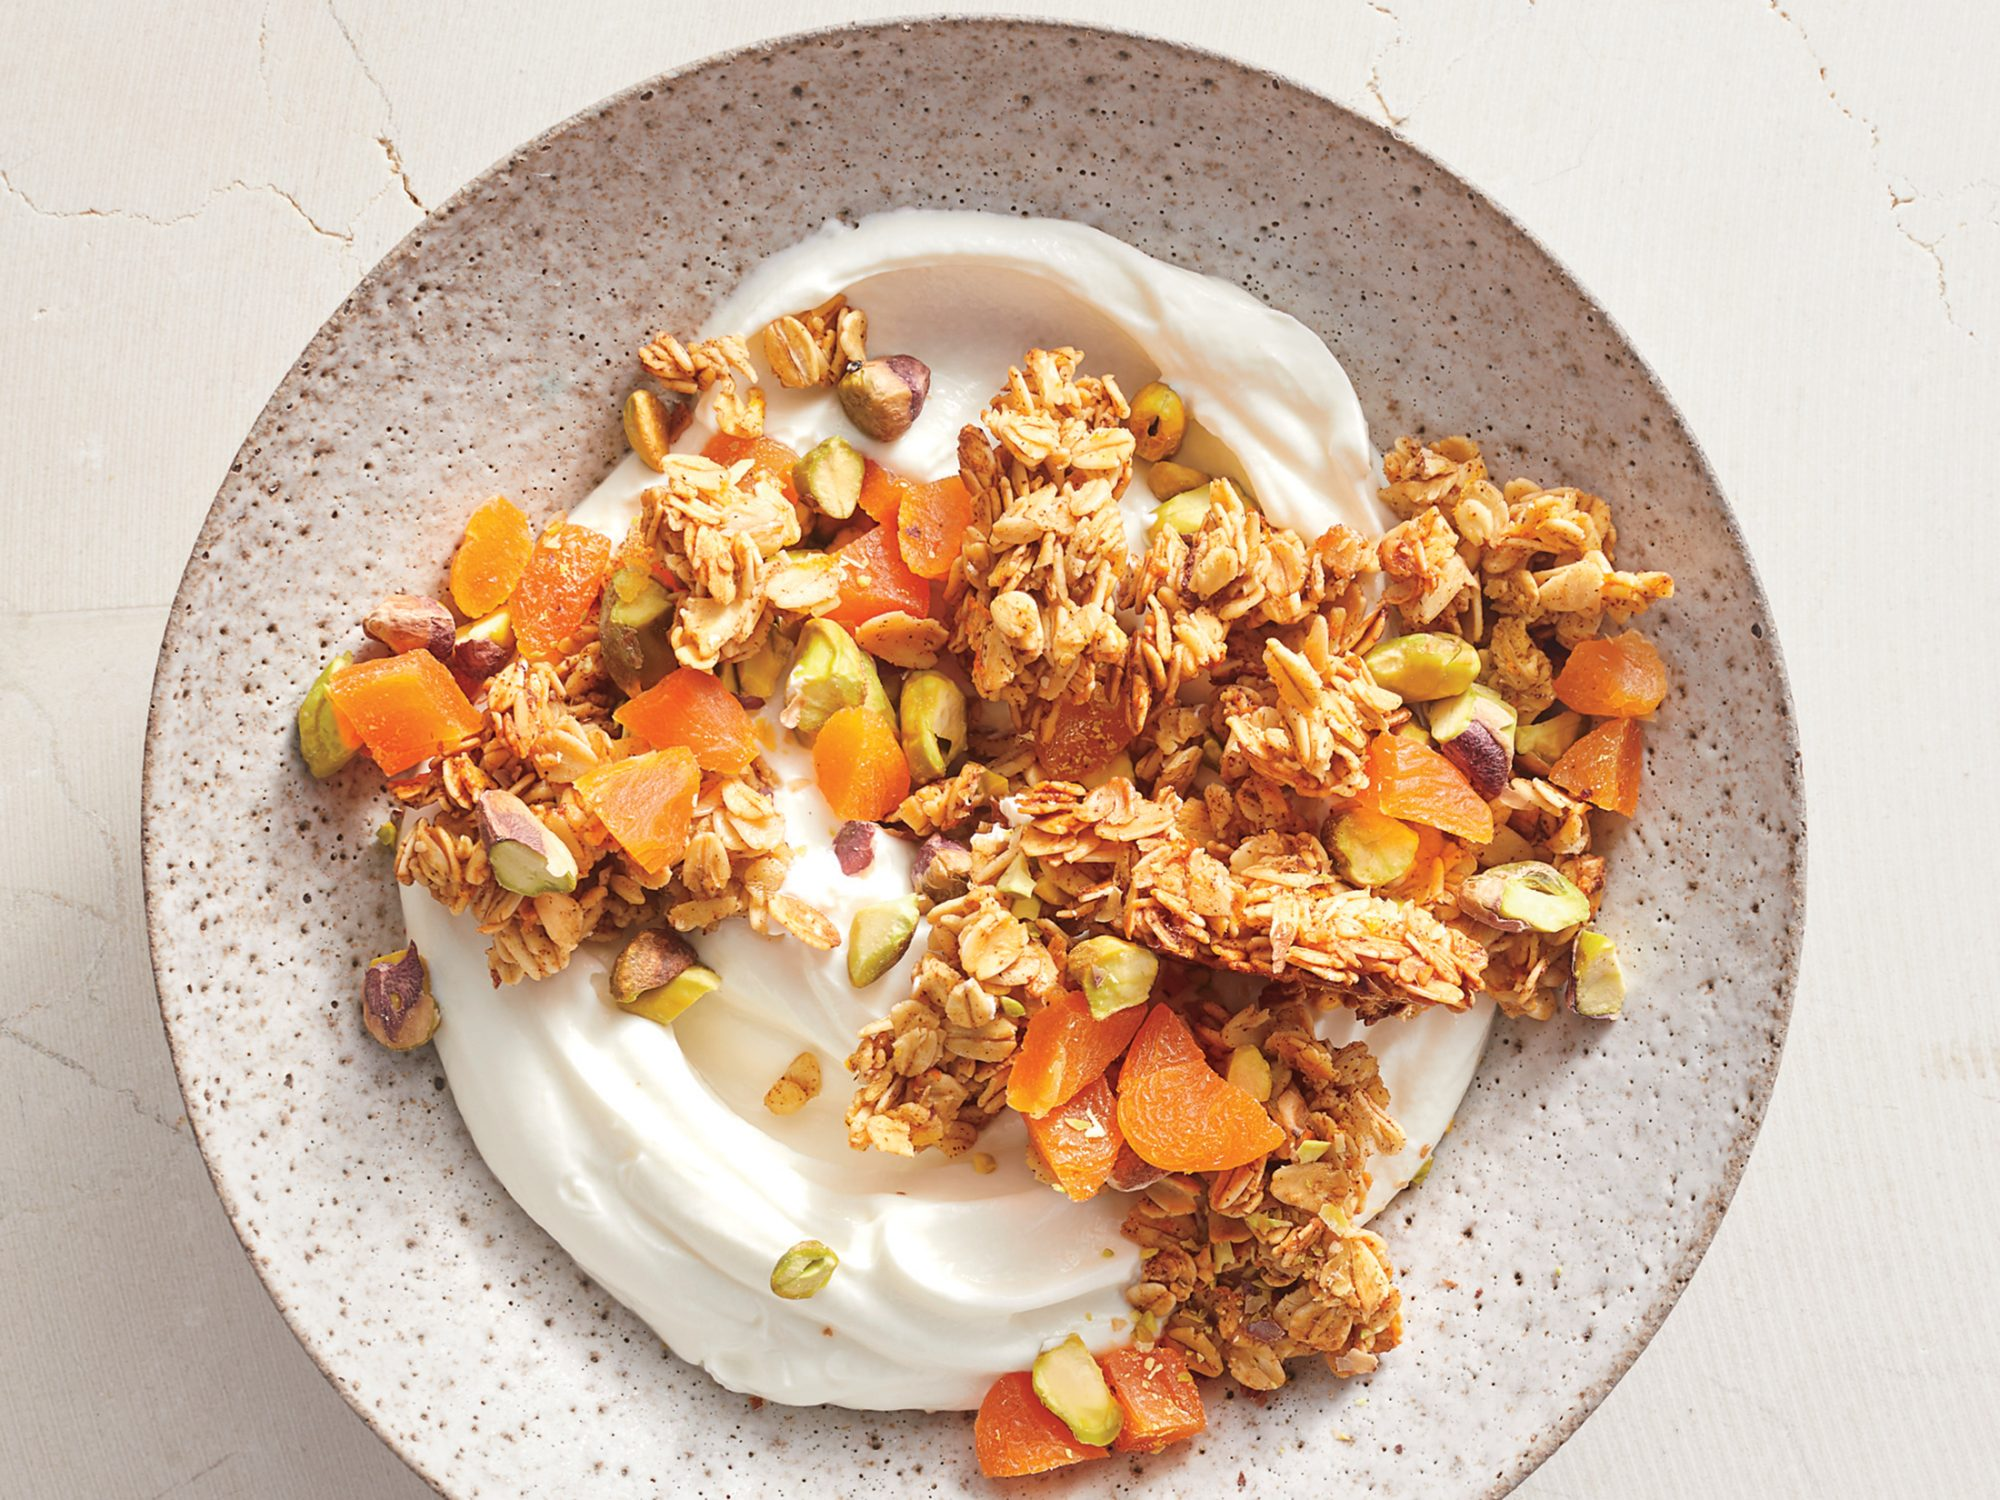 Pistachio Granola with Yogurt